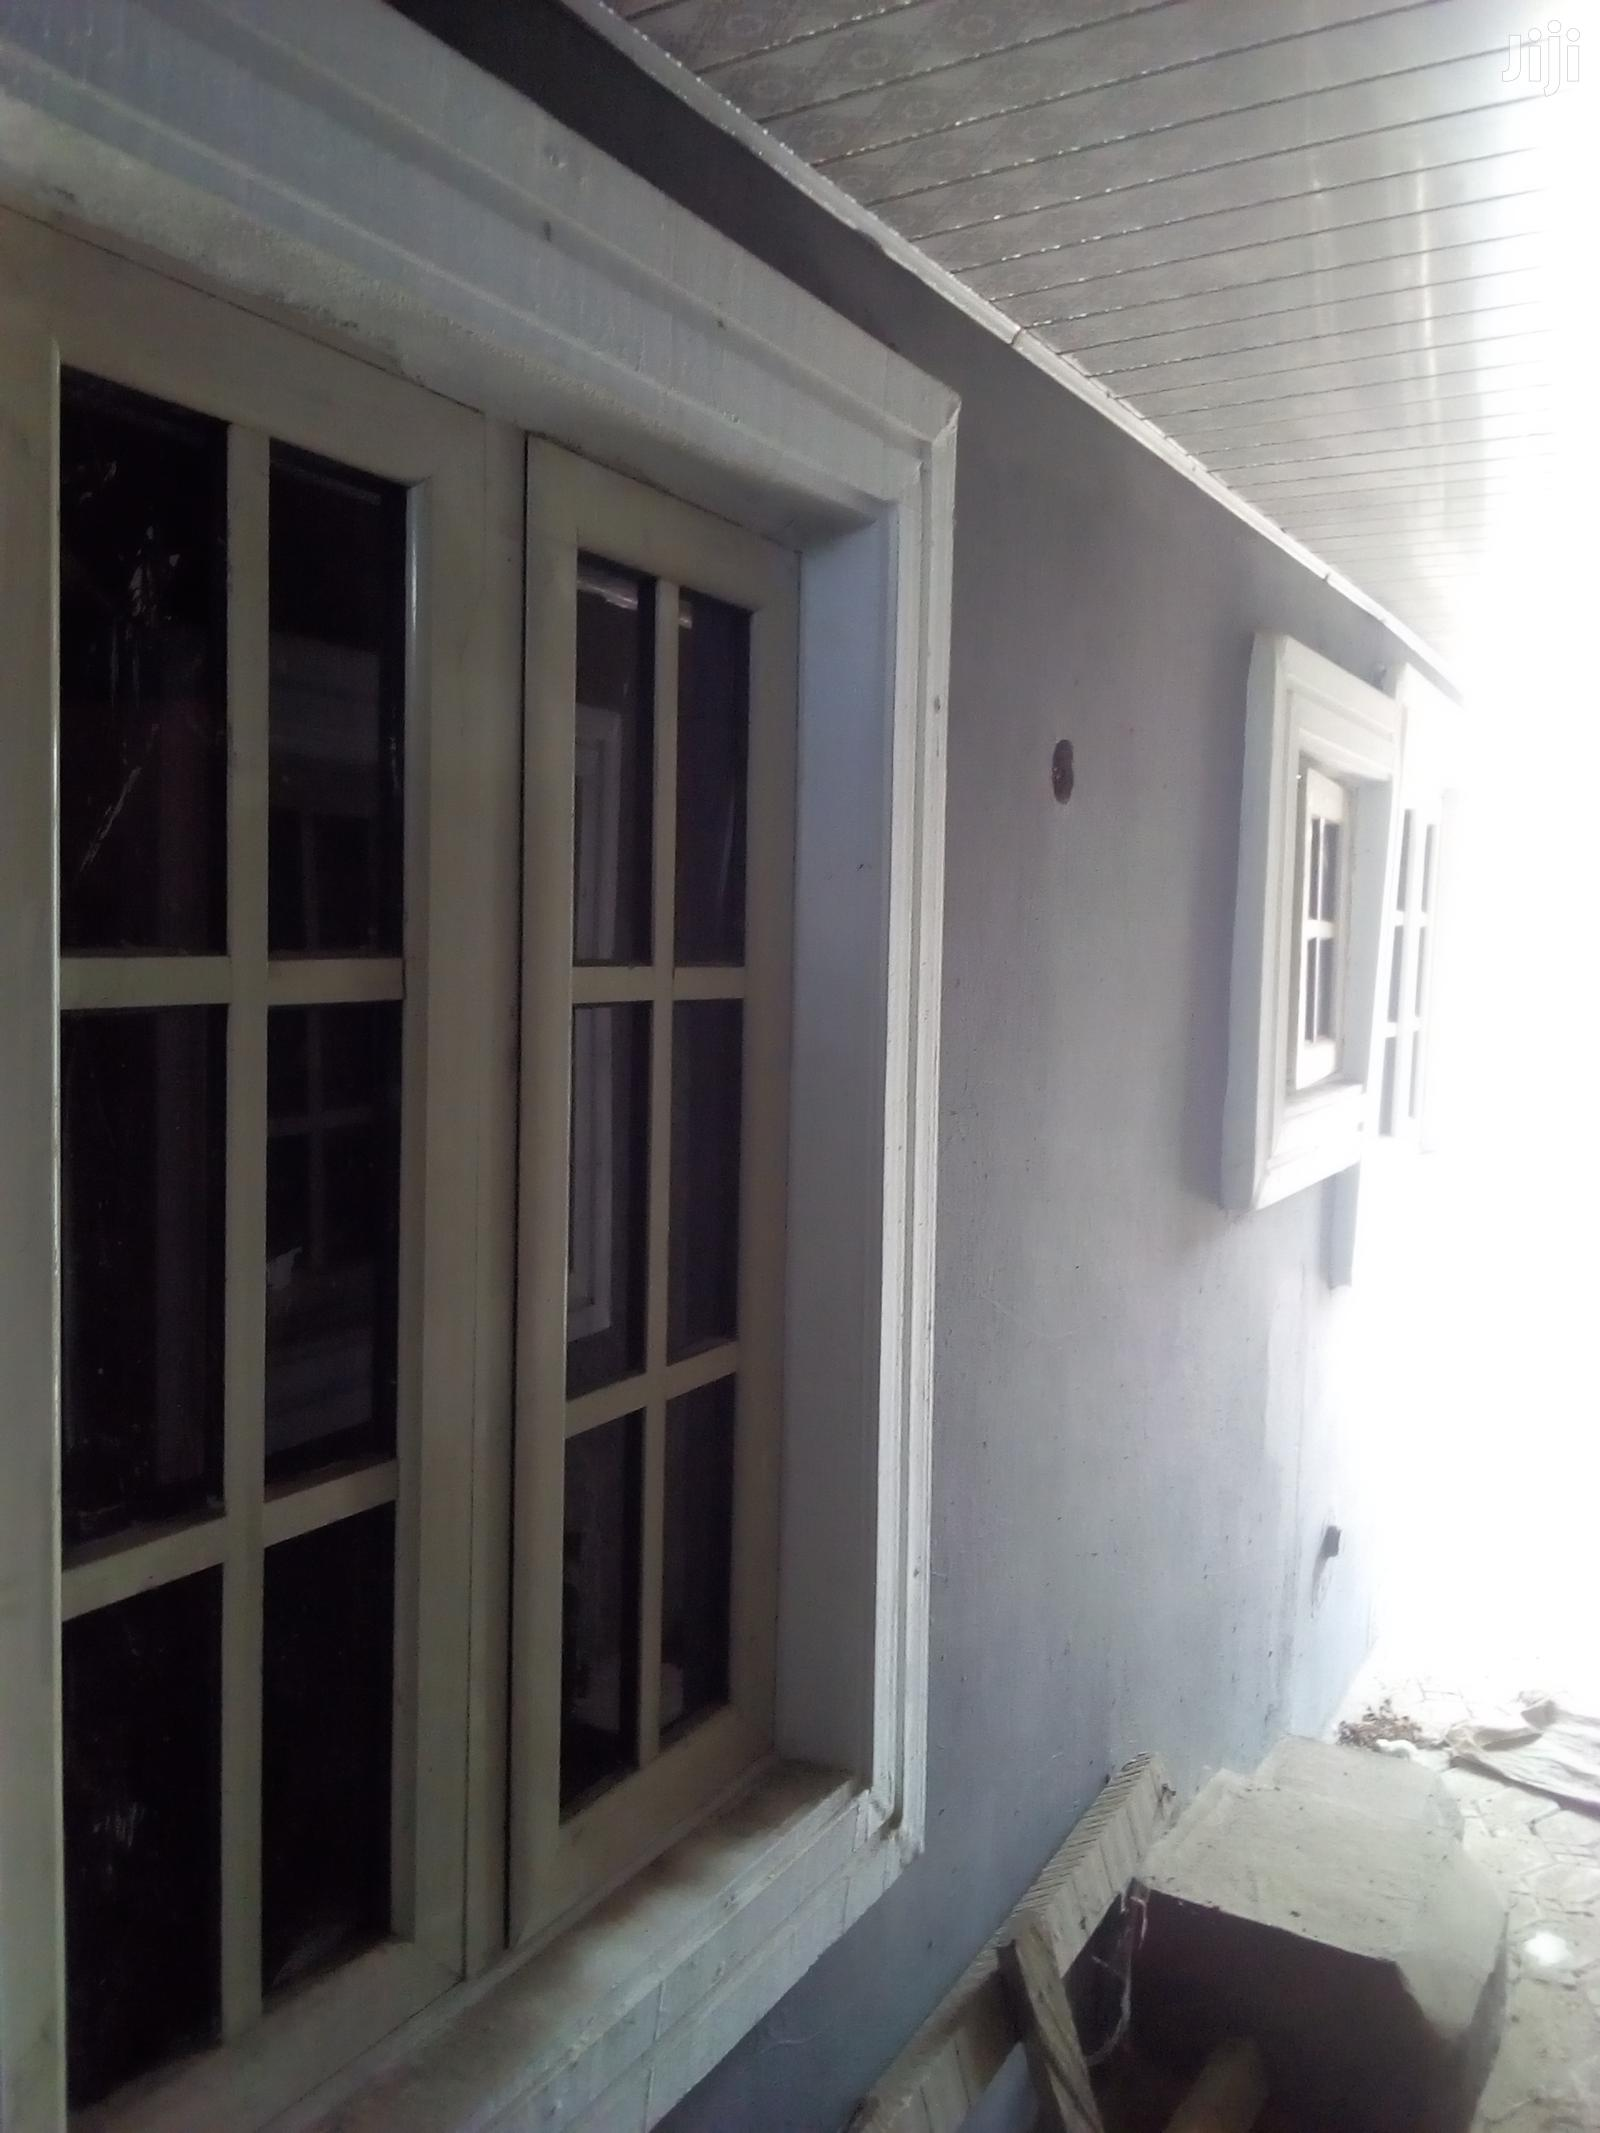 New & Spacious 3 Bedroom Bungalow At Satellite Town For Sale. | Houses & Apartments For Sale for sale in Amuwo-Odofin, Lagos State, Nigeria